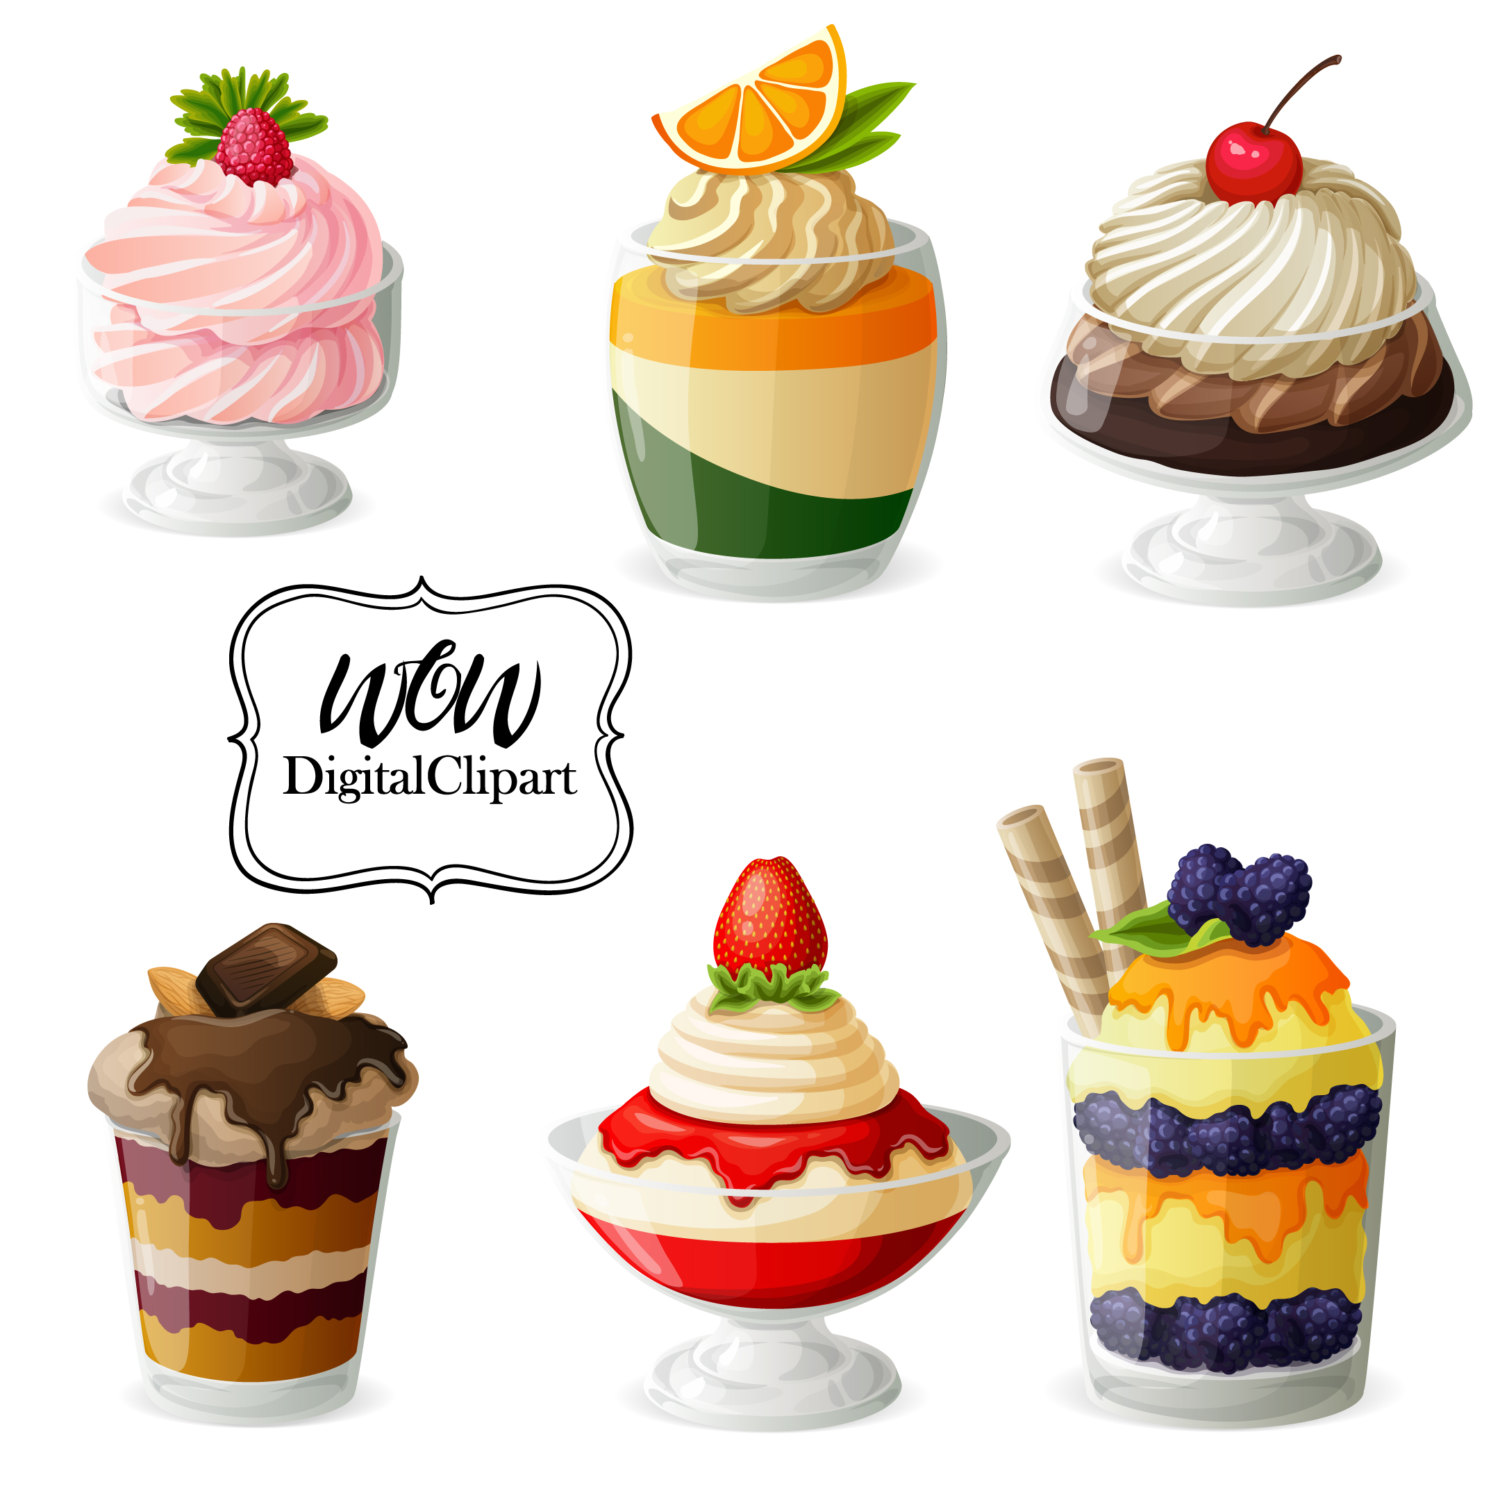 Bakery clipart bakery stall. Dessert pinart sale watercolor